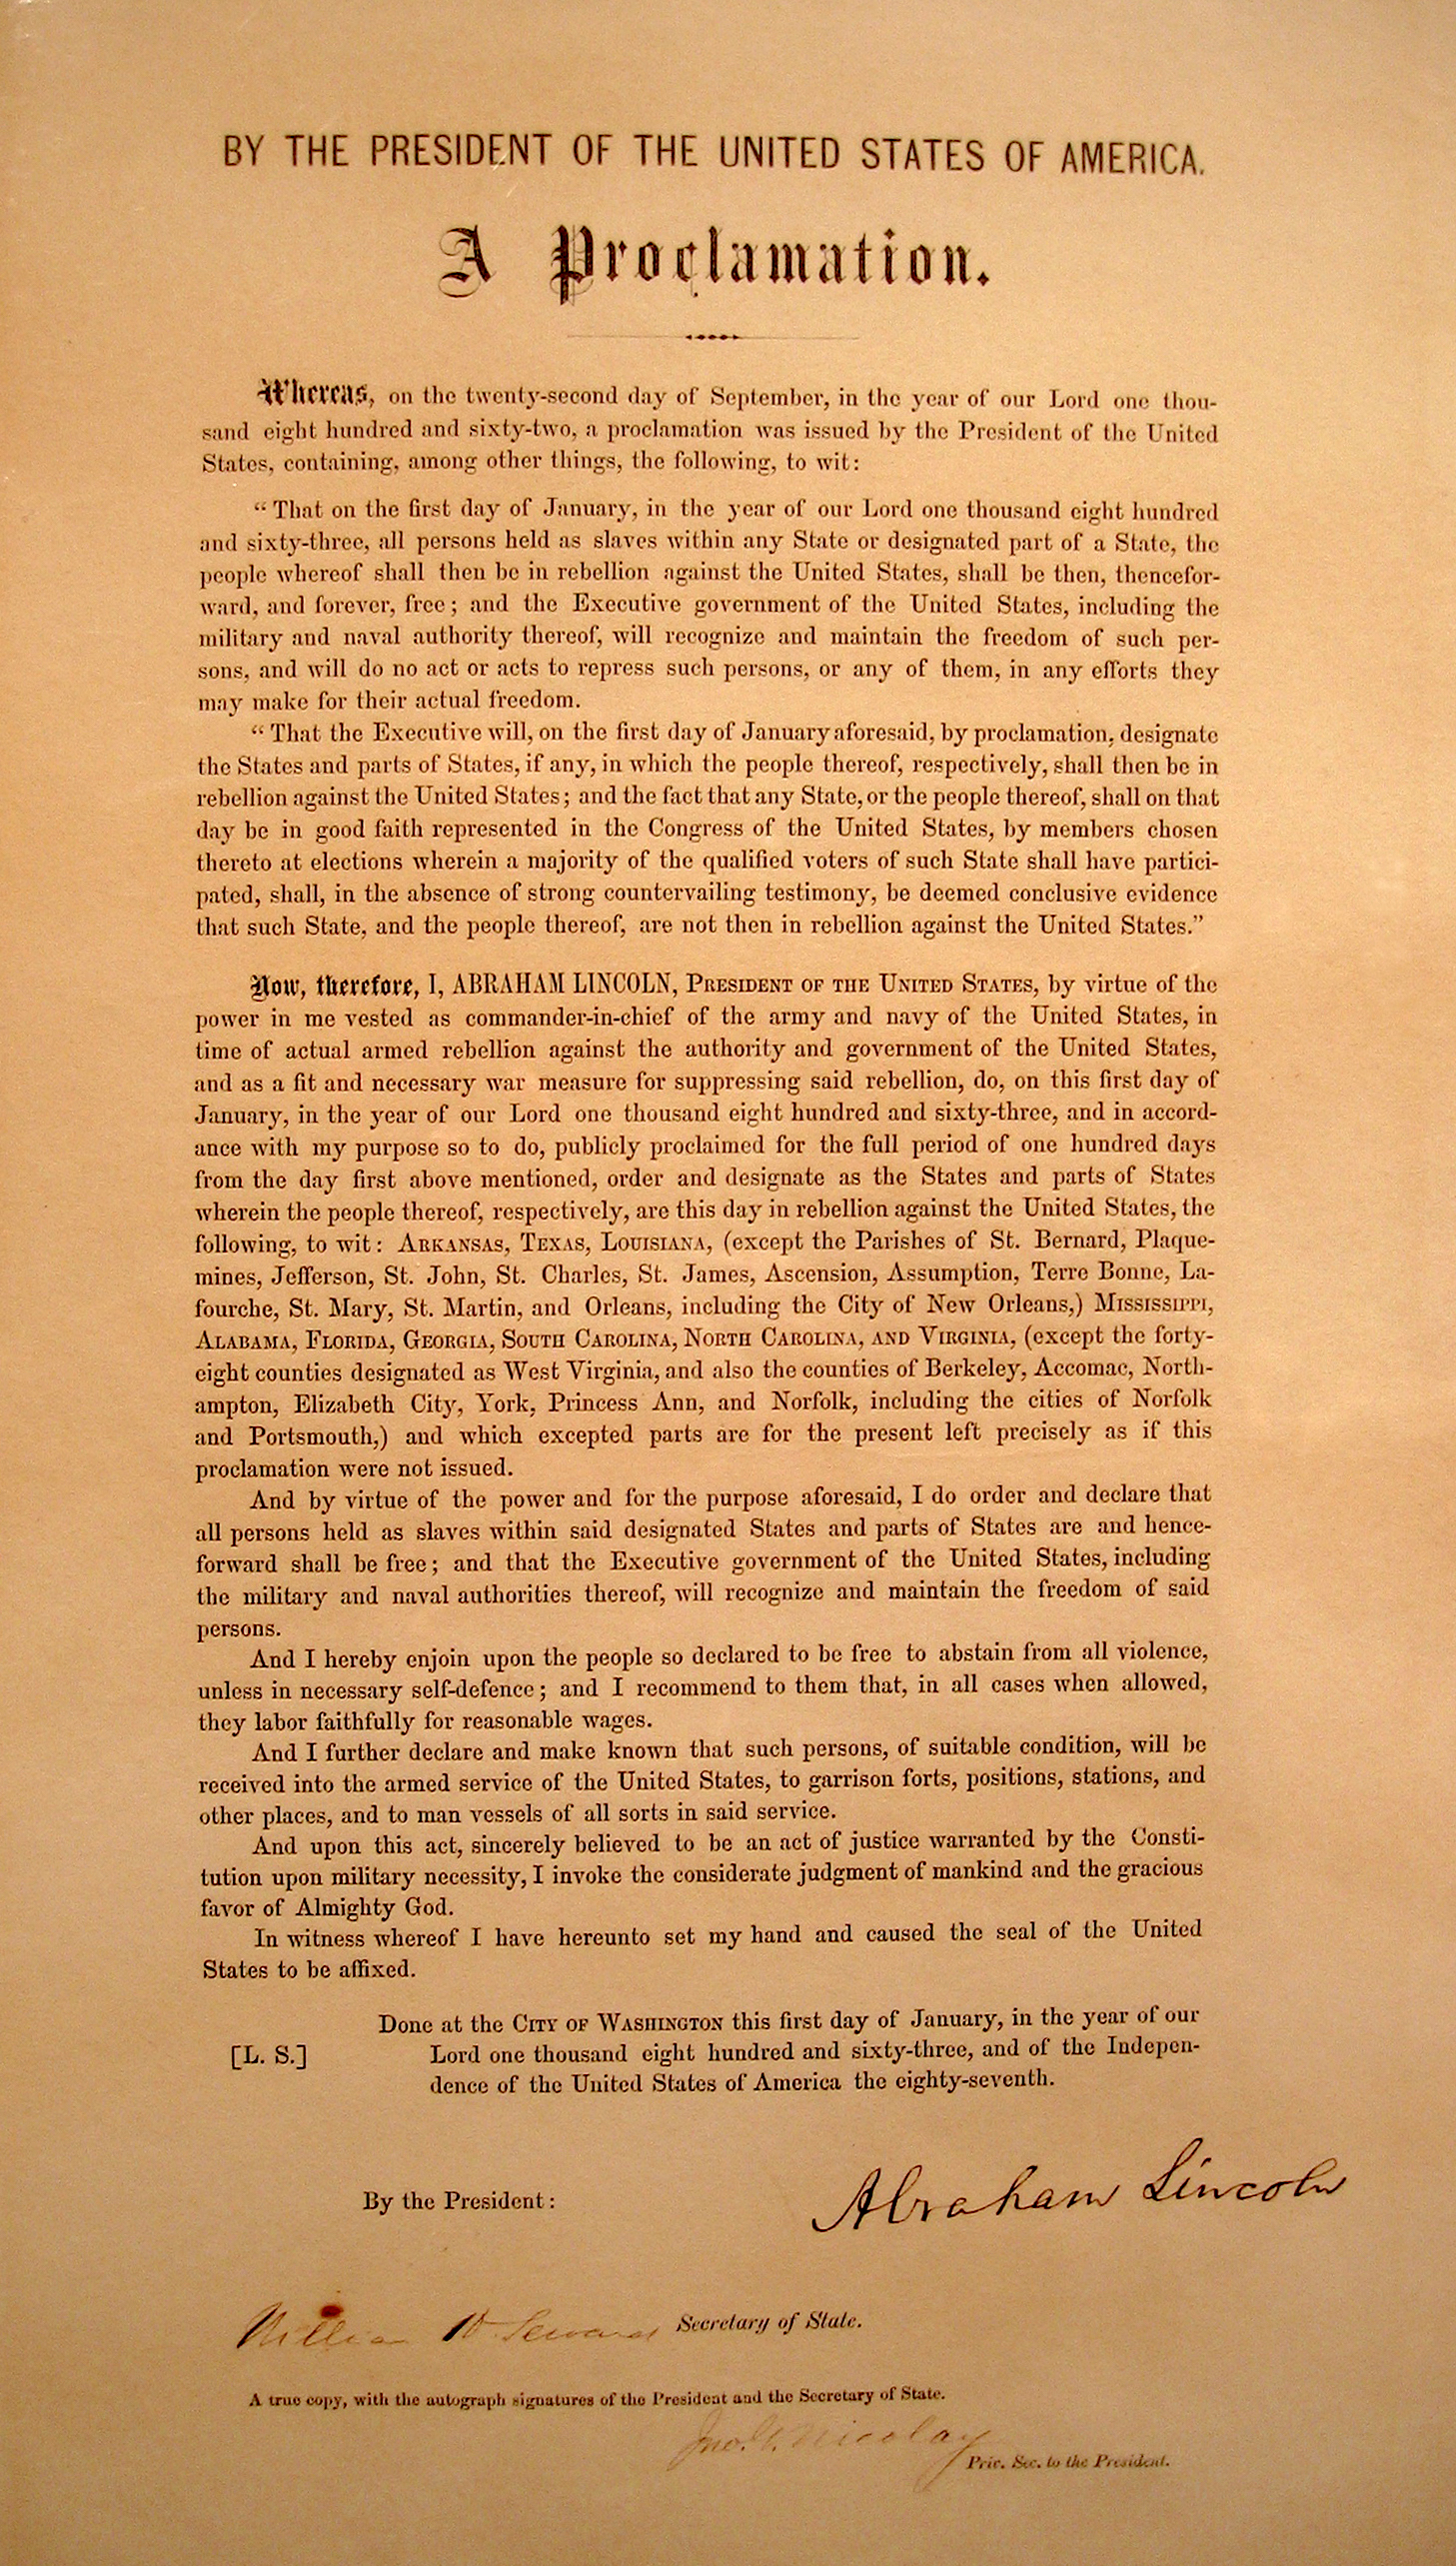 File:Emancipation proclamation typeset signed.jpg